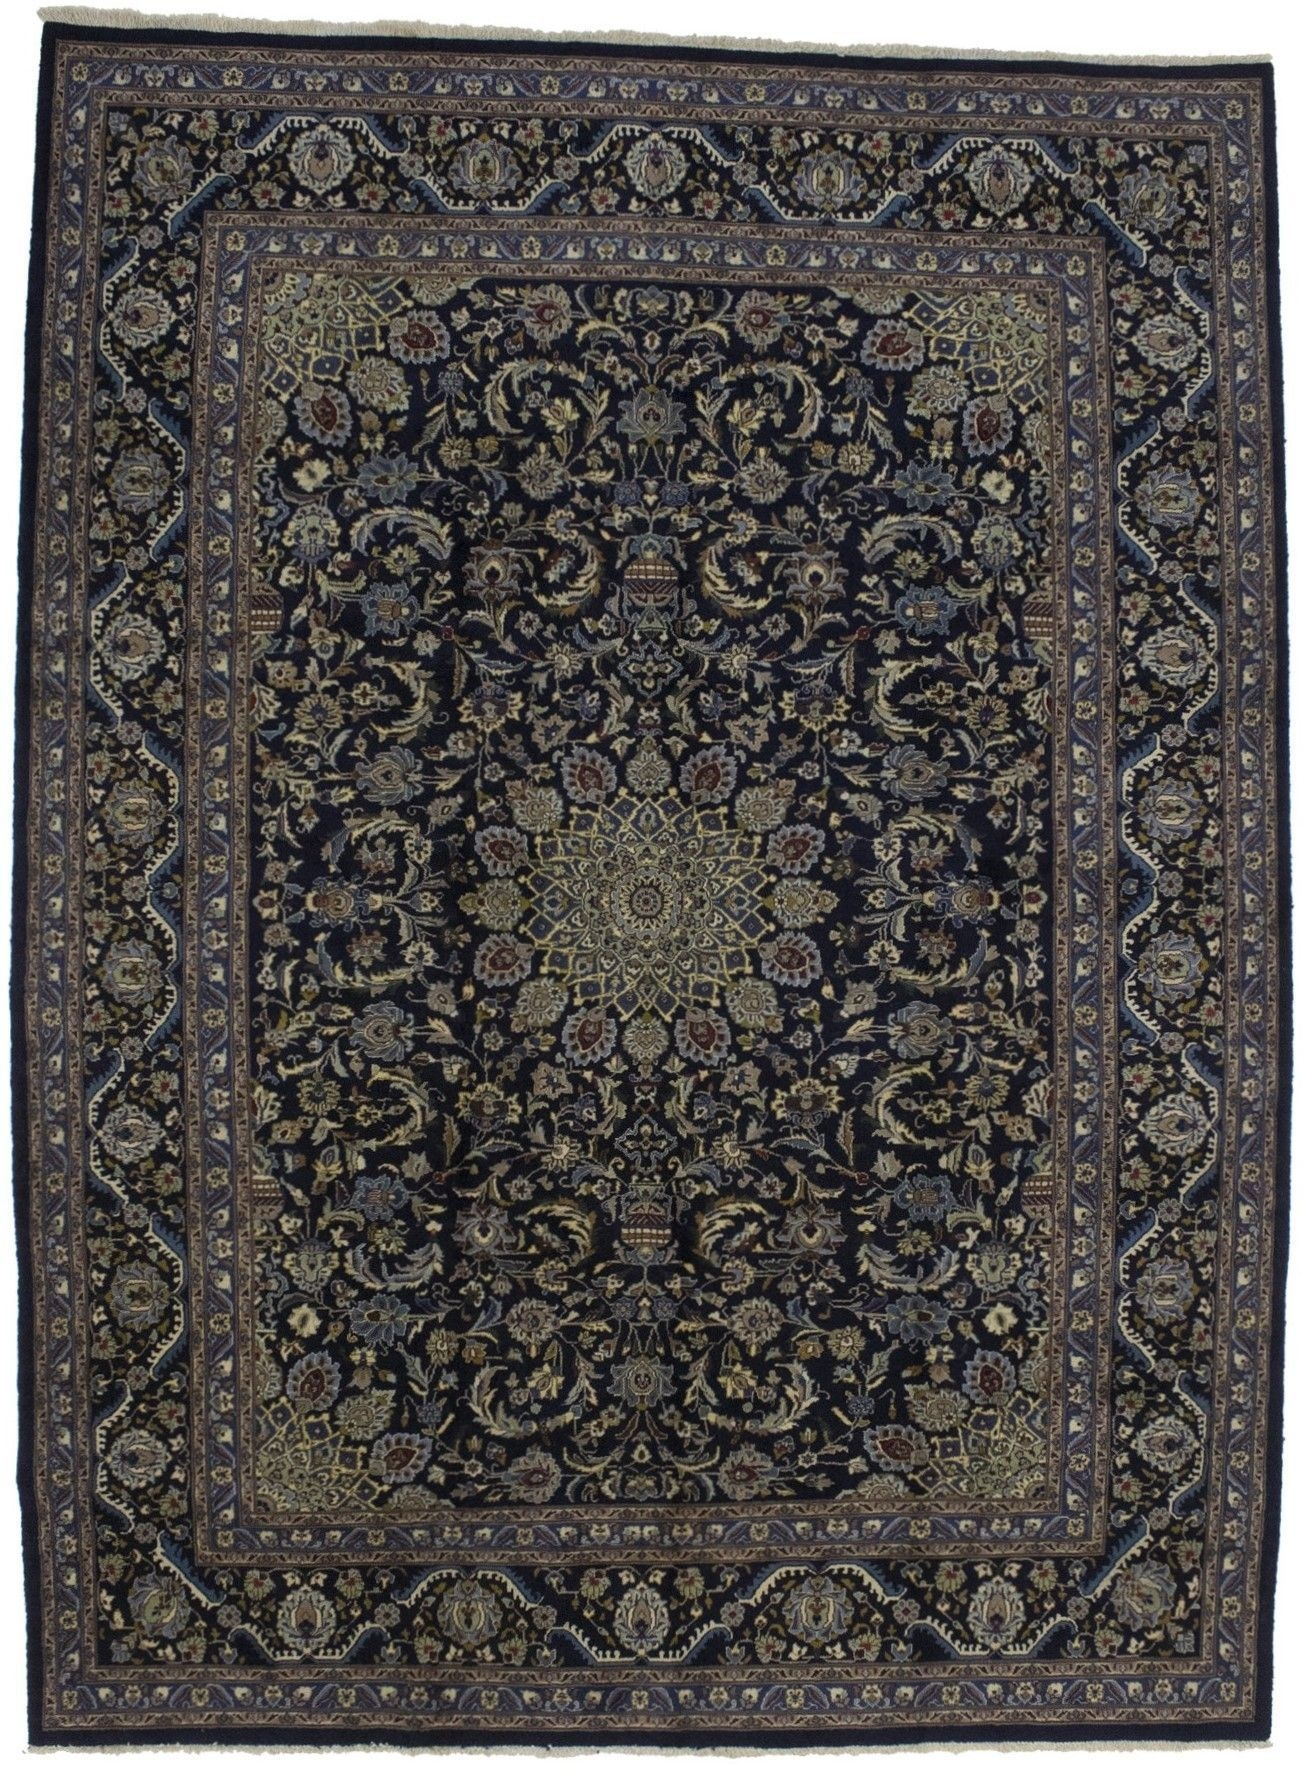 Incredible Rugs for Living Room 9x12 On Wonderful Search Results for Vintage Navy Blue Traditional 9x12 On Rugs for Living Room 9x12